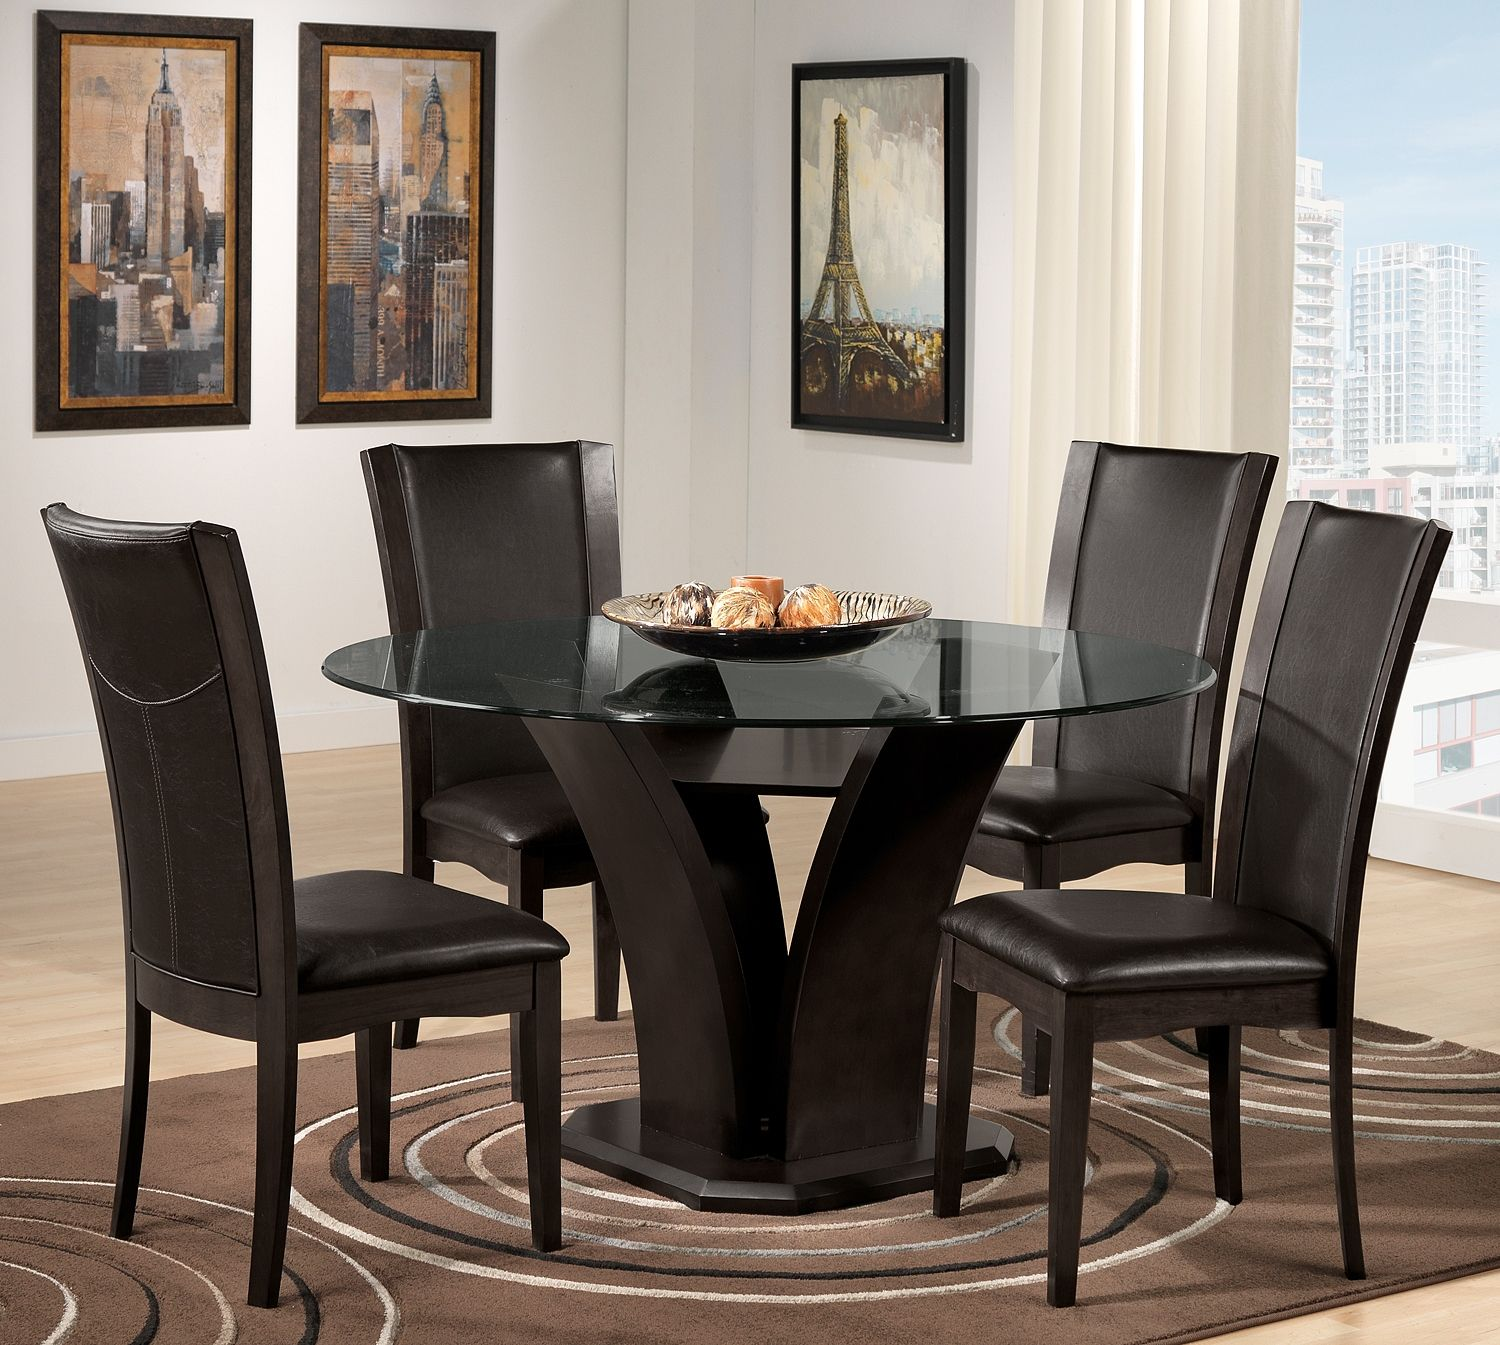 Fantastic Francesca Ii Casual Dining Collection Leons Hello Dailytribune Chair Design For Home Dailytribuneorg